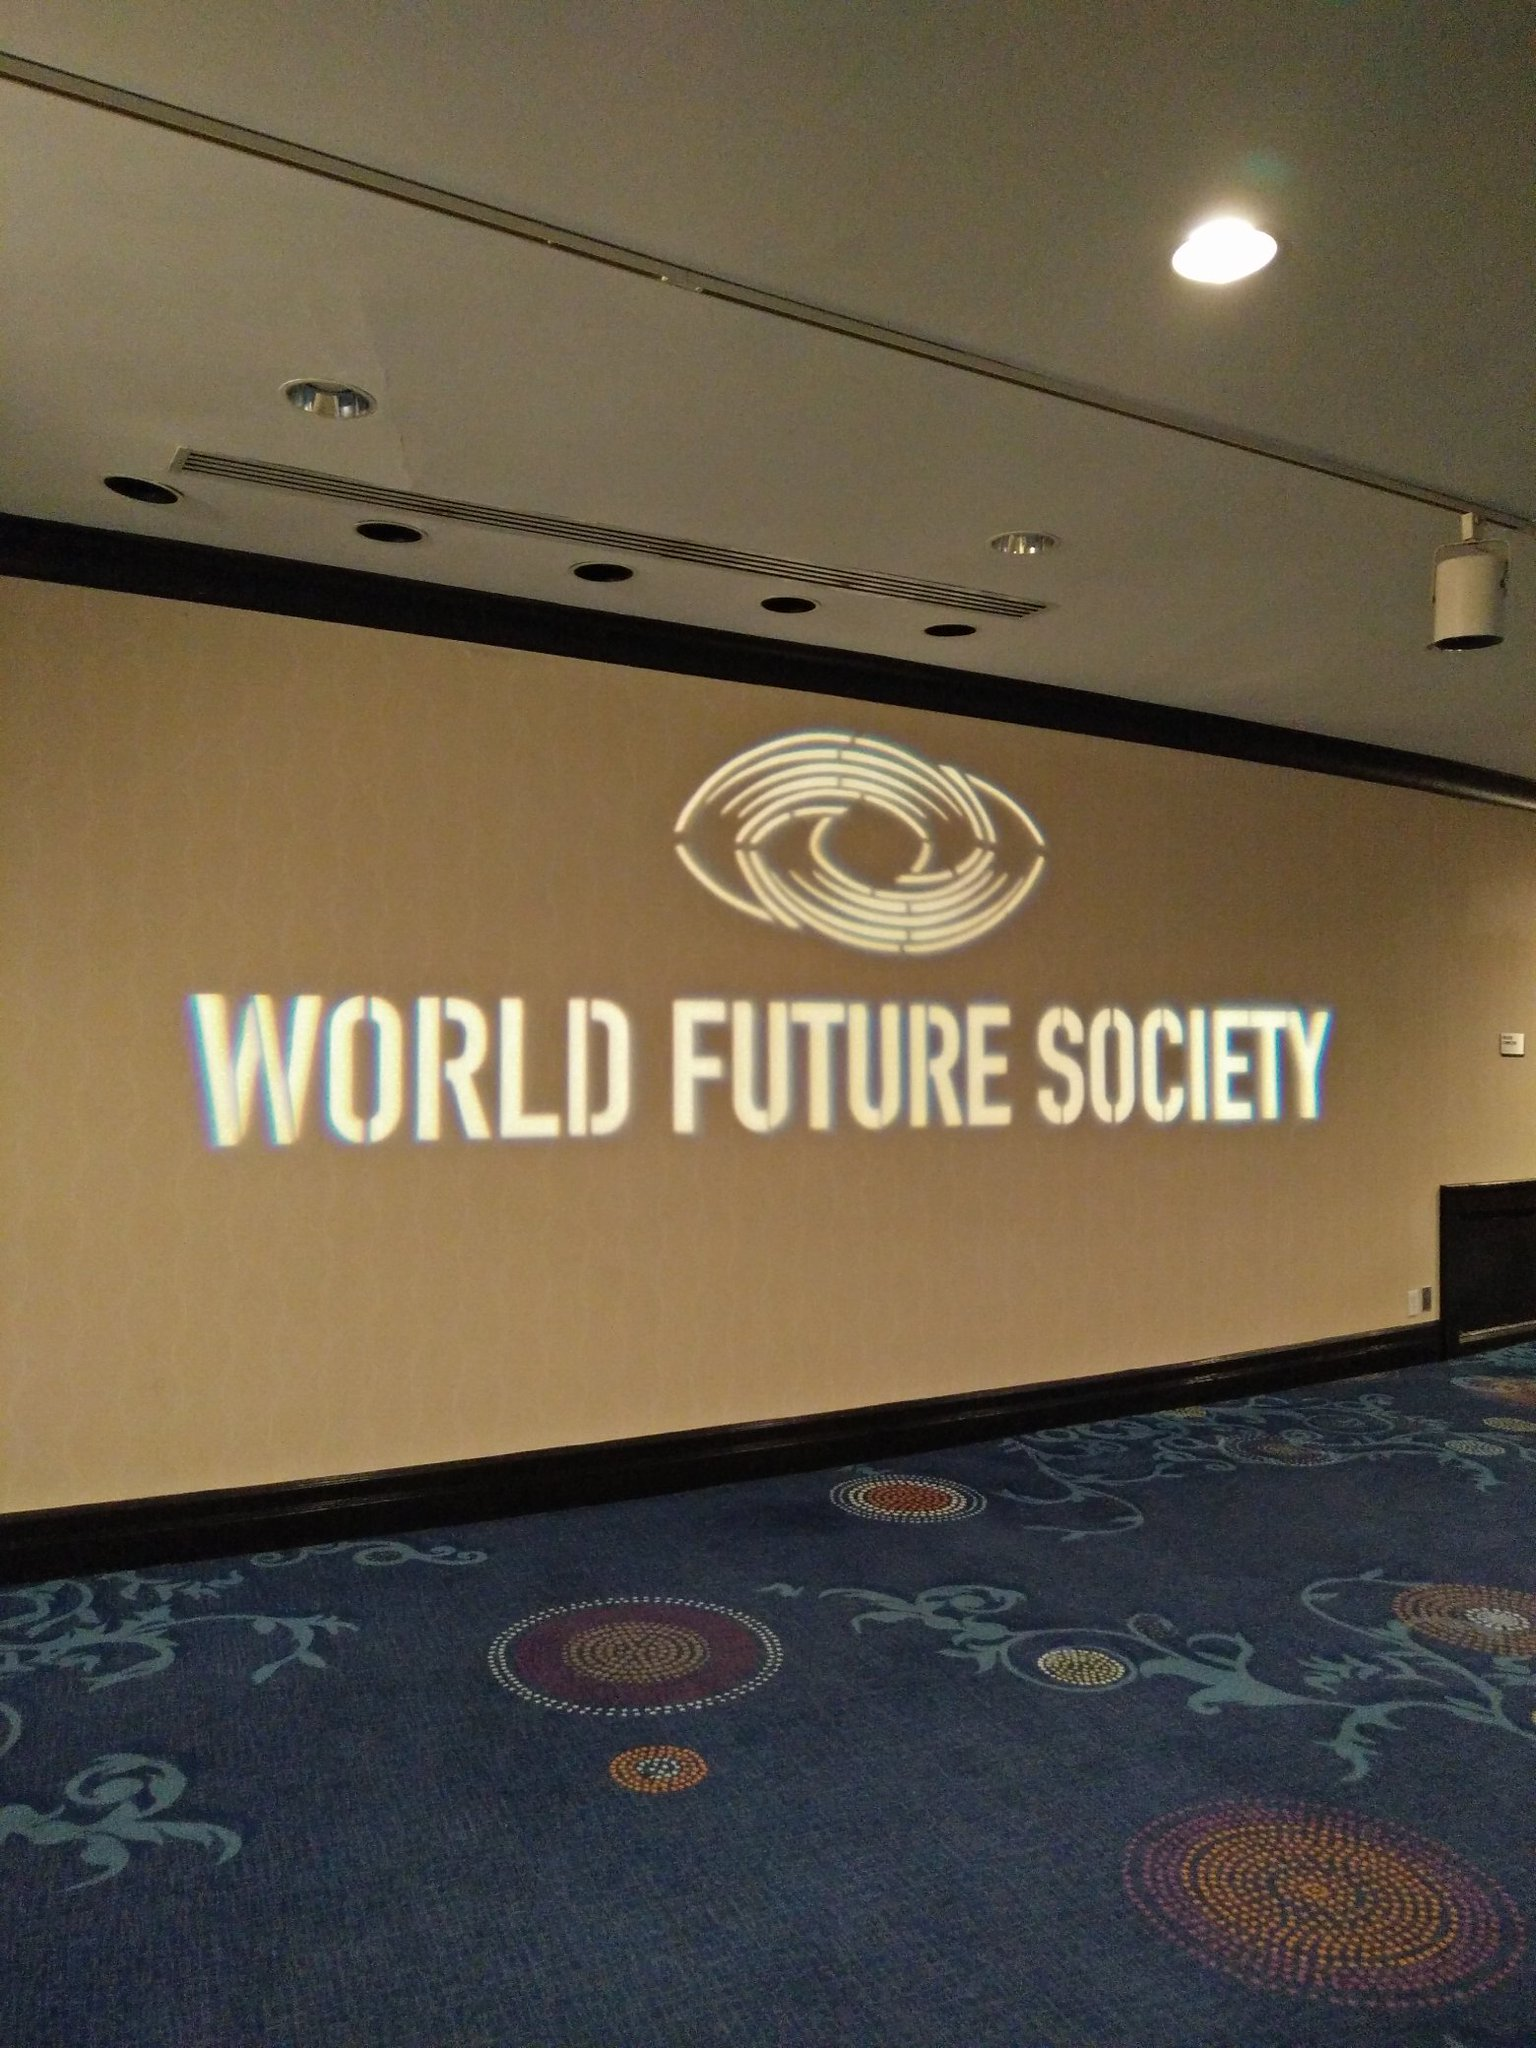 Loving the conversations here at the World Future Society's 50th annual conference at Washington DC https://t.co/46zKEoAnNI